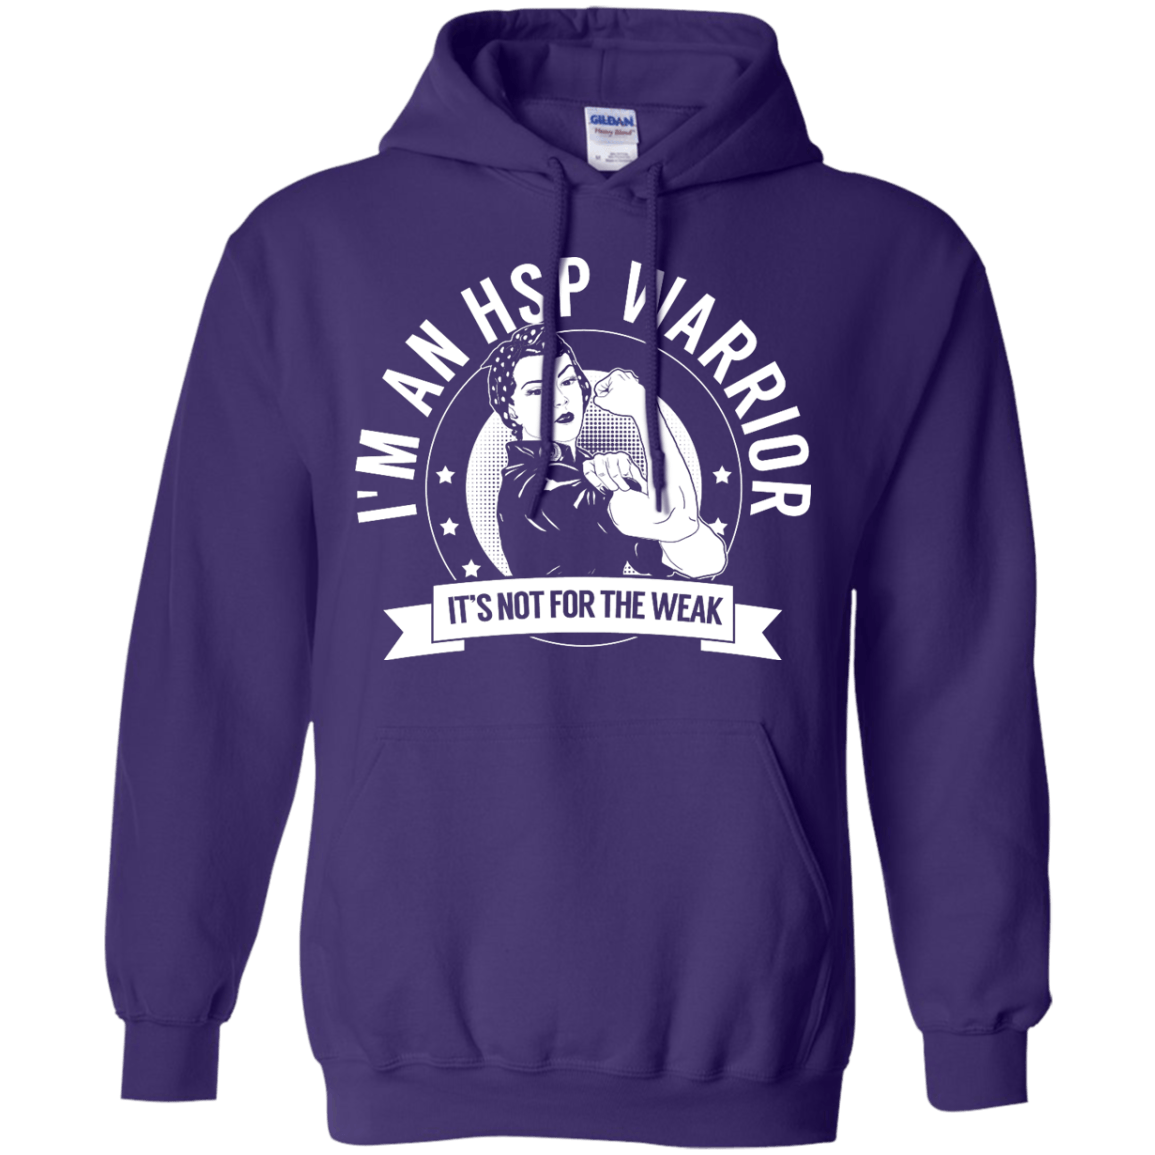 Hereditary Spastic Paraparesis - HSP Warrior Not For The Weak Pullover Hoodie 8 oz - The Unchargeables